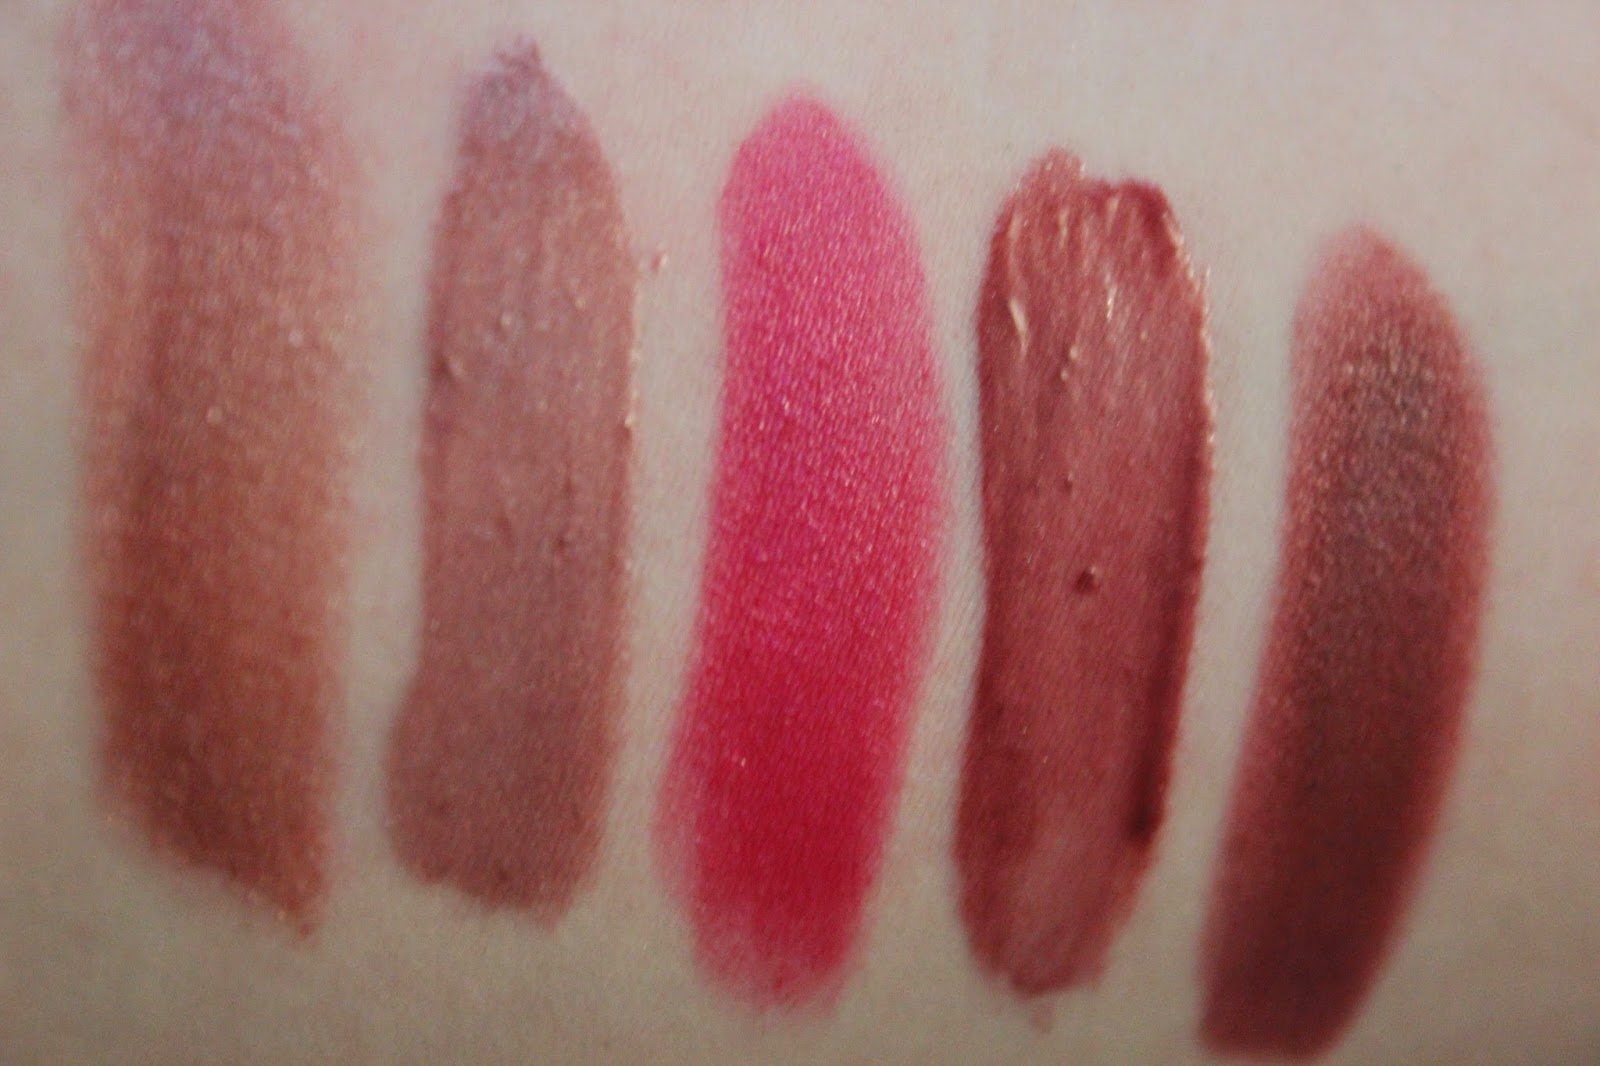 ulta lipstick swatches, ulta lipstick, swatches, lipstick, ulta, makeup, beauty, review, collection, ulta collection, makeup collection,